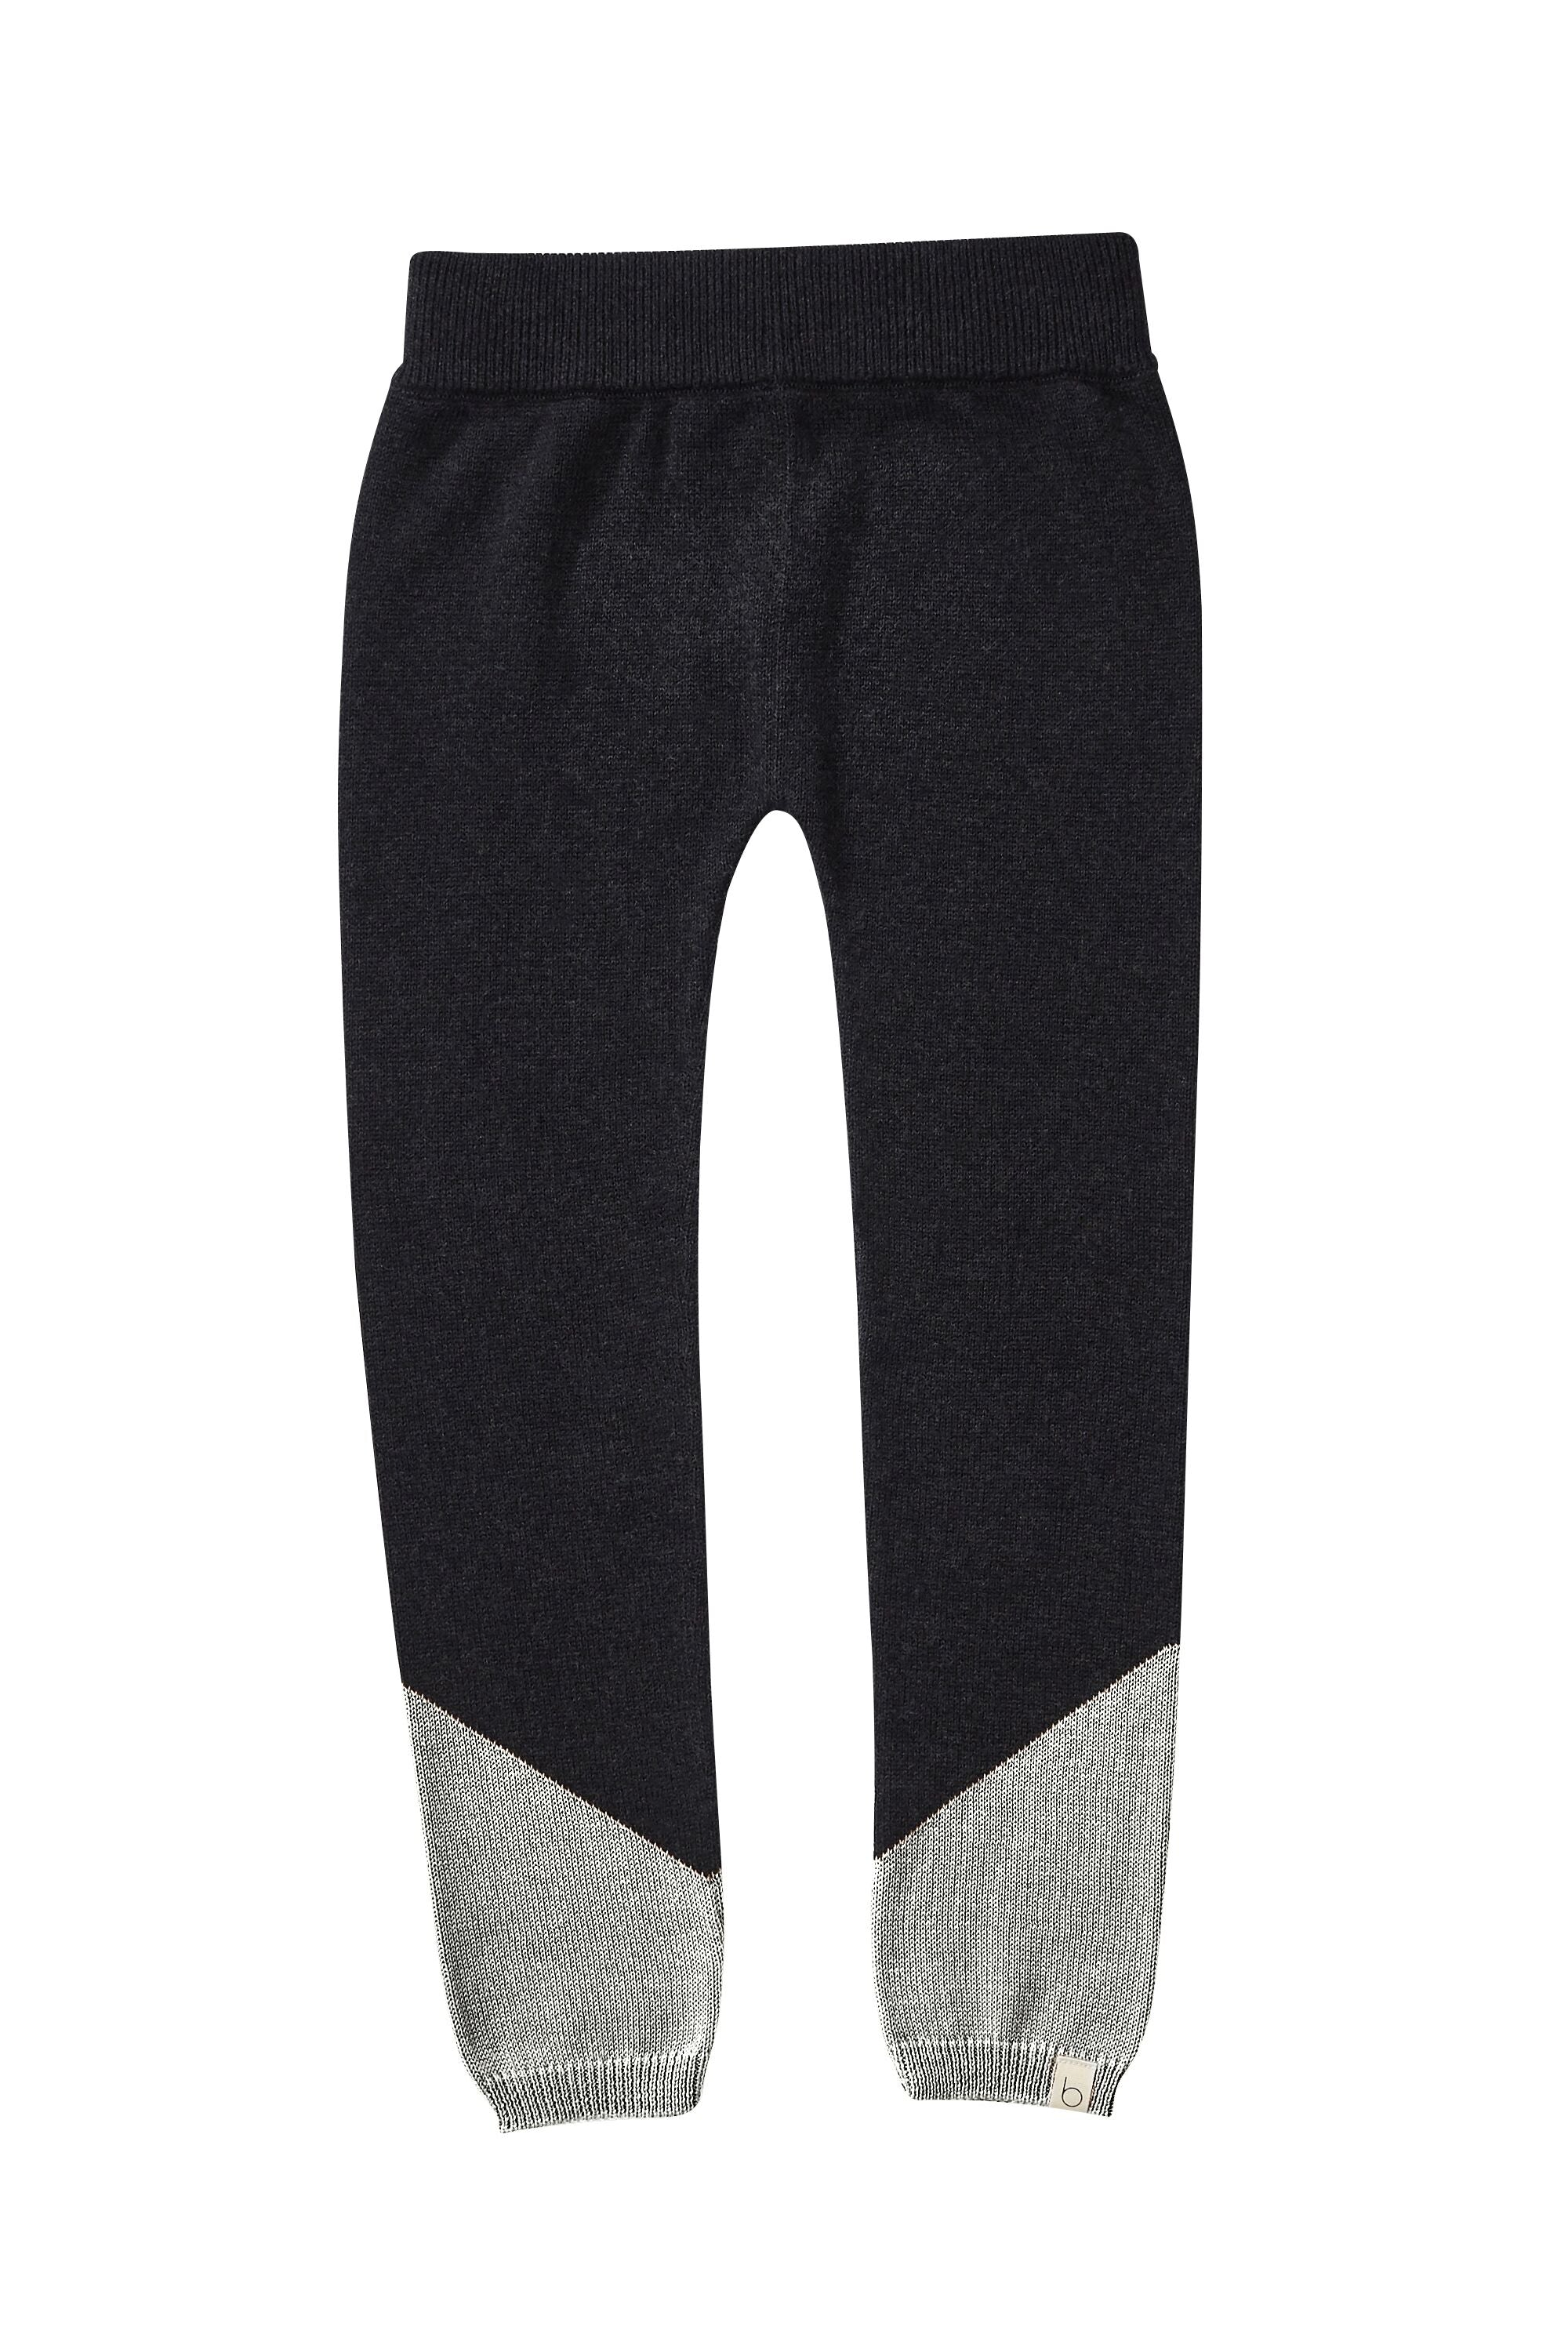 Bacabuche Colorblock Knit Legging - Charcoal/Heather